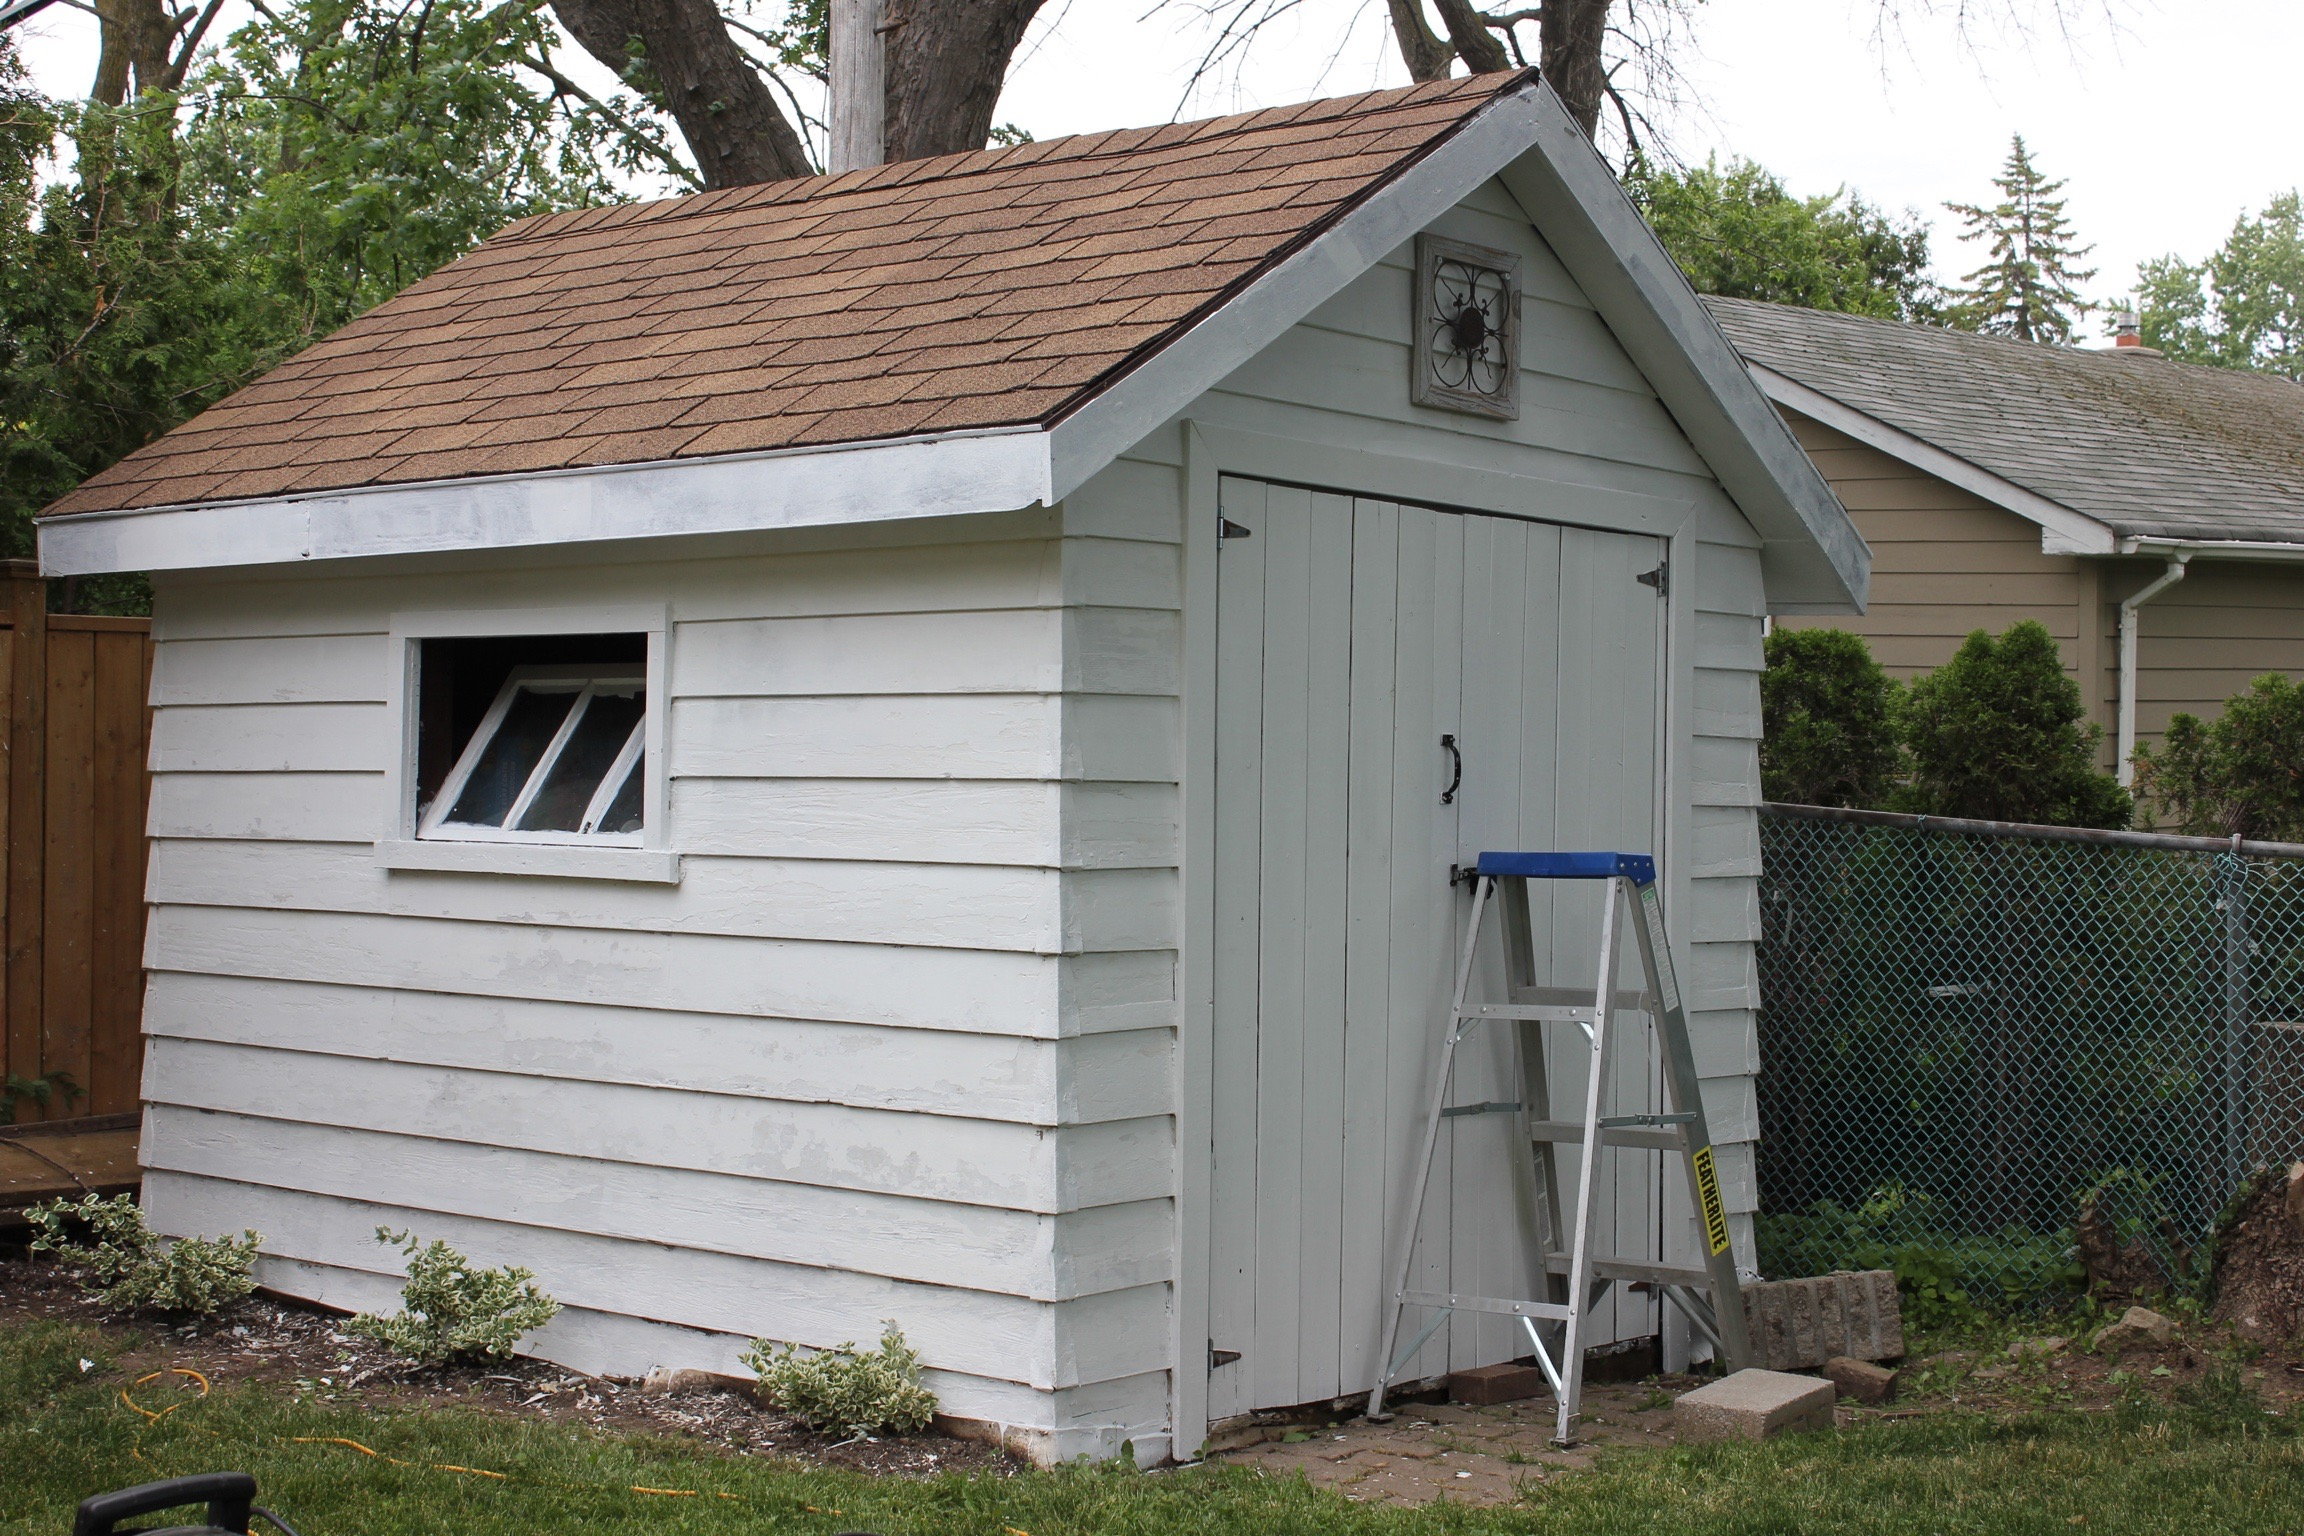 paint backyard make fab shed the peel based that a and didn sure help it primer likely scene homeowners was for sheds with we oil t provided s so drab given from to recommendation img would stealers age